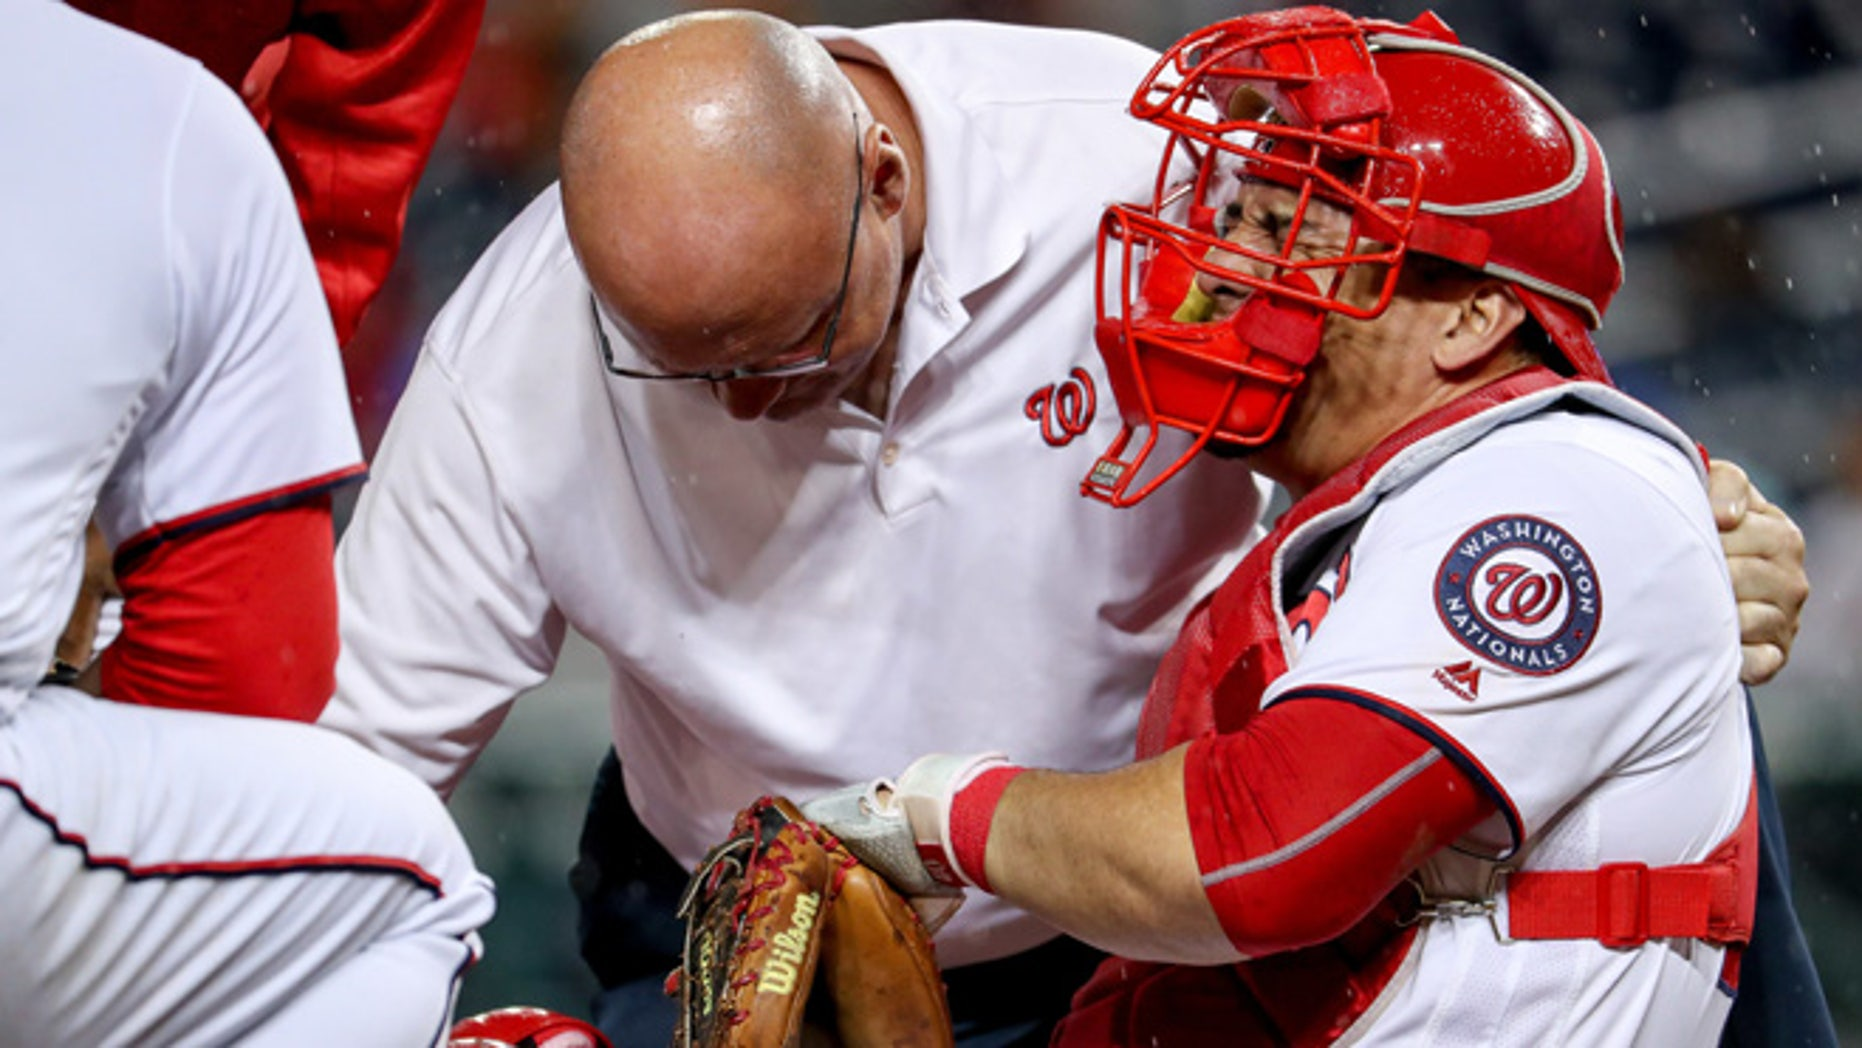 Washington Nationals catcher Wilson Ramos (40) goes down with a knee injury during the 6th inning of a baseball game at Nationals Park in Washington, Monday, Sept. 26, 2016. (AP Photo/Andrew Harnik)